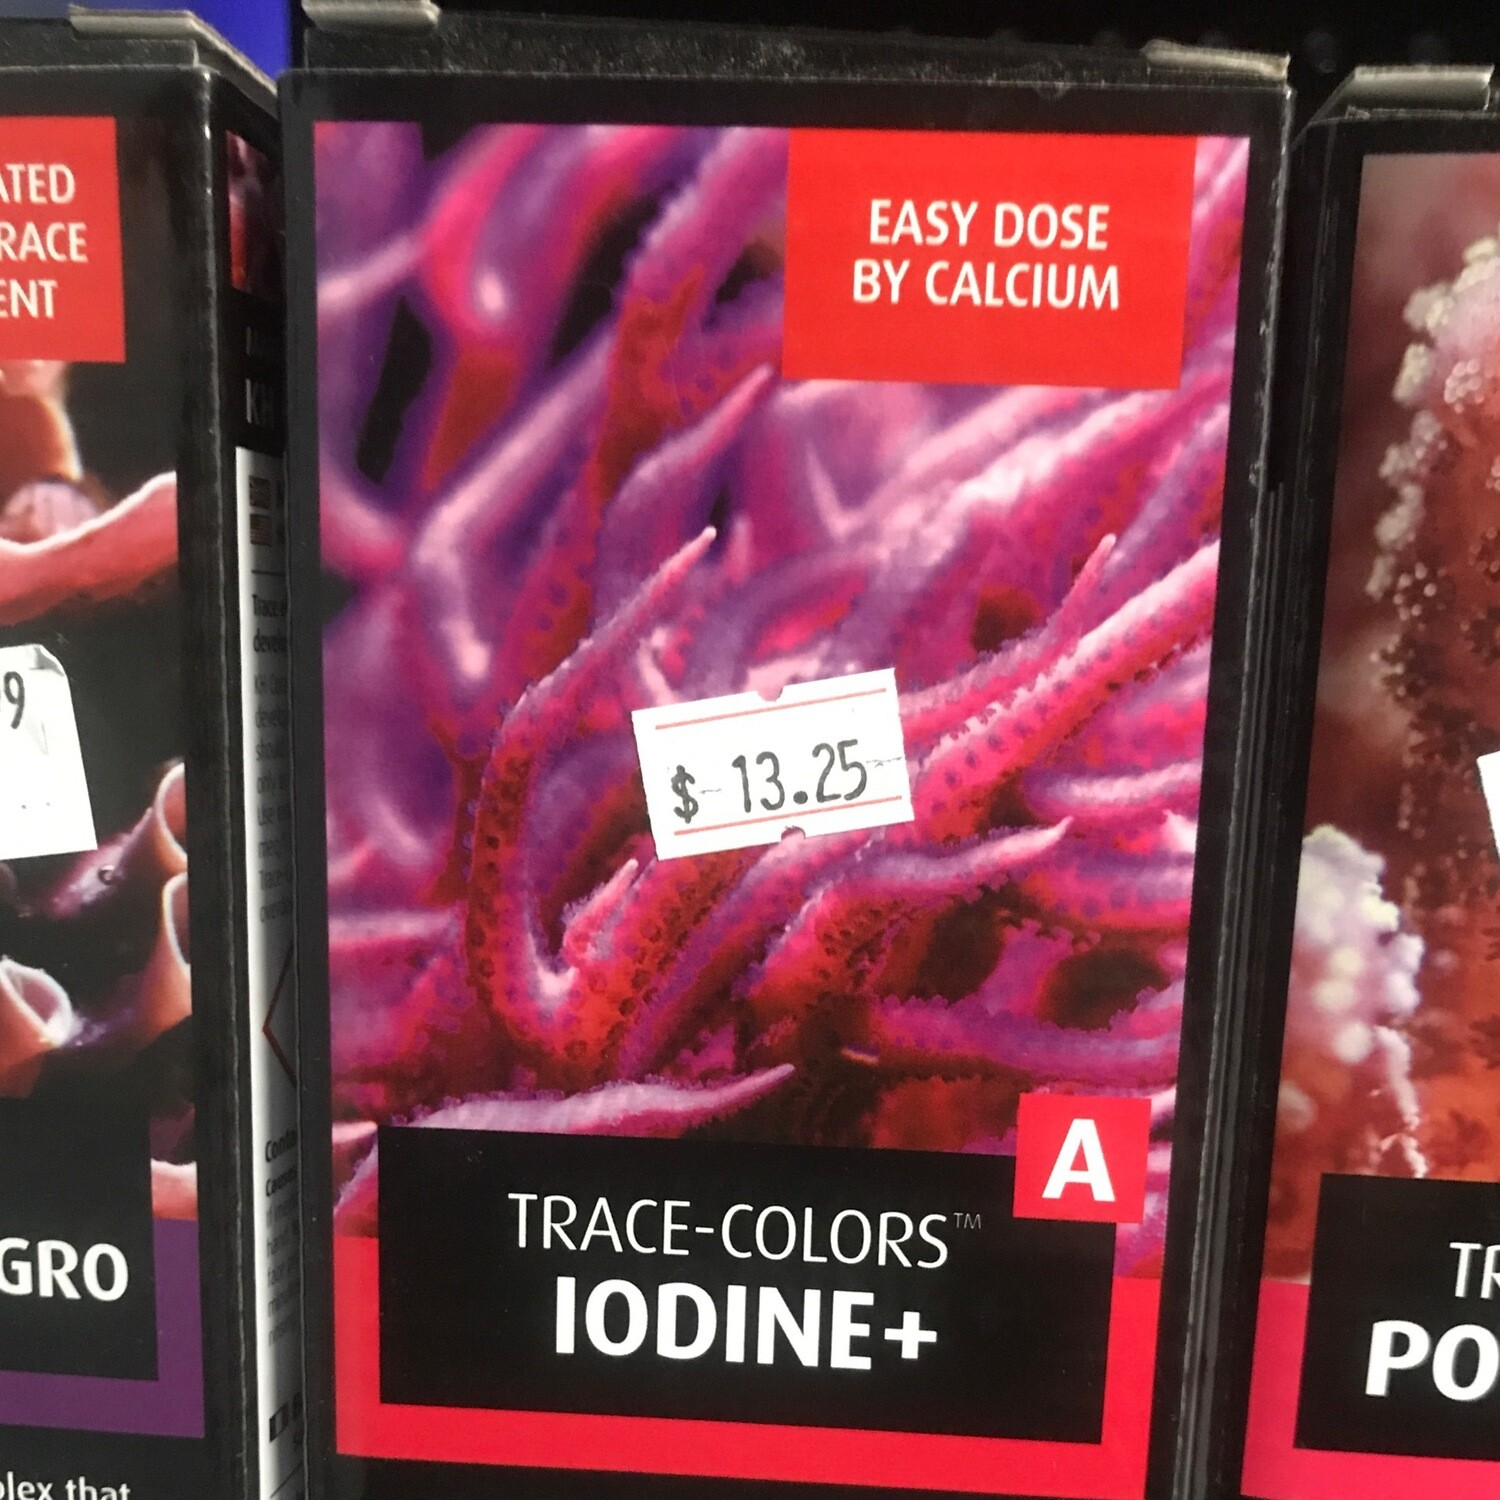 Red Sea Trace-colours A Iodine+ 500ml